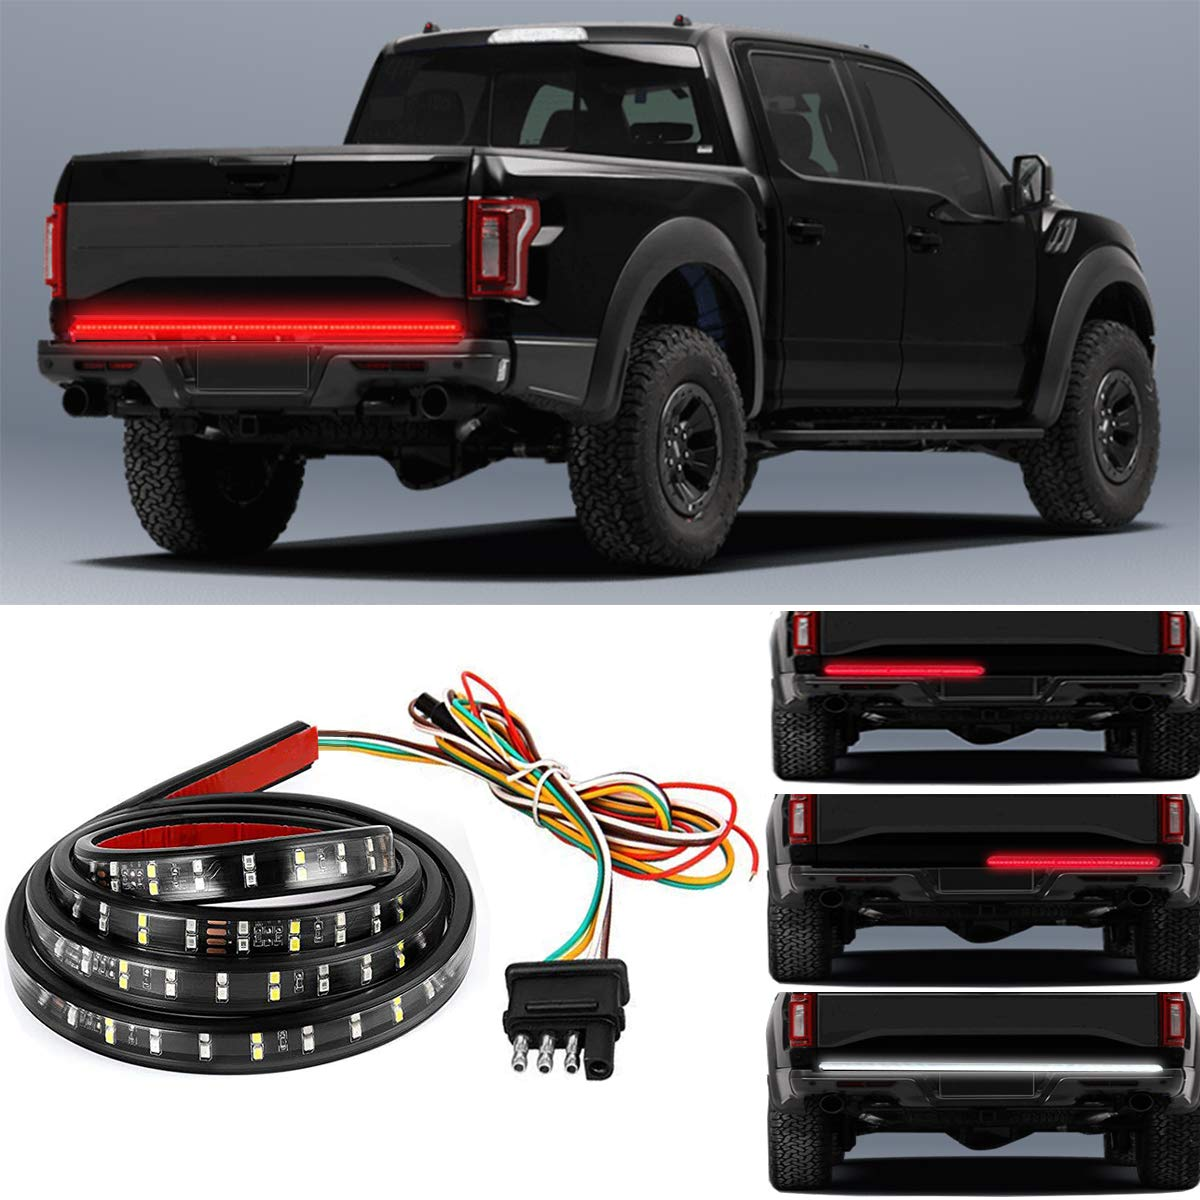 RangerRider SUV Truck LED Tailgate Lights Bar, 60'' Red/White Truck Brake Light Waterproof Double Row Flexible Strip Trailer Tail Lights Turn Signal Back Up Stop Running Light for Pickup RV Van Car by RangerRider